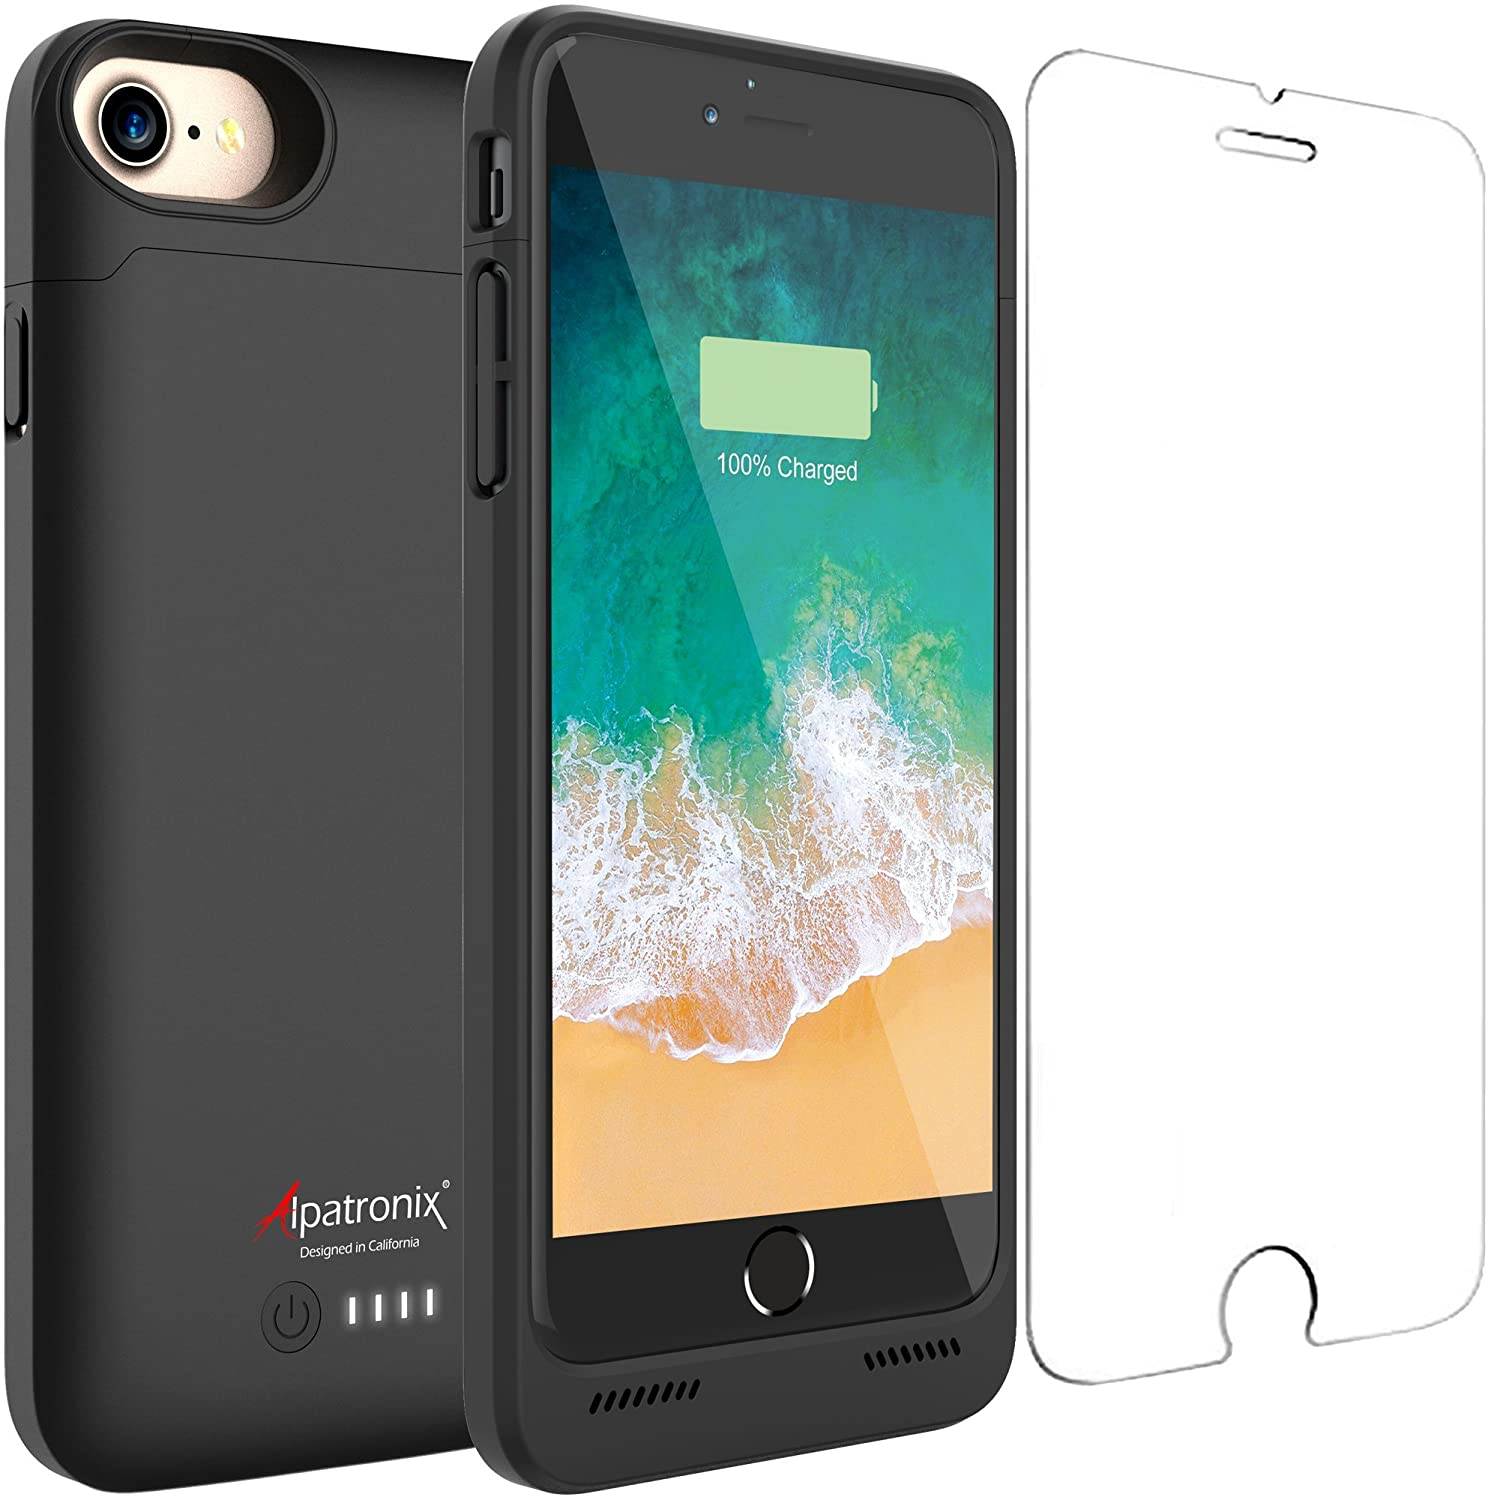 iPhone 7/8 Battery Case, Alpatronix BX180 4.7-inch 3200mAh Slim External Rechargeable Extended Protective Portable Charging Case & Charger Cover for iPhone 7 & iPhone 8 Juice Bank Power Pack - Black